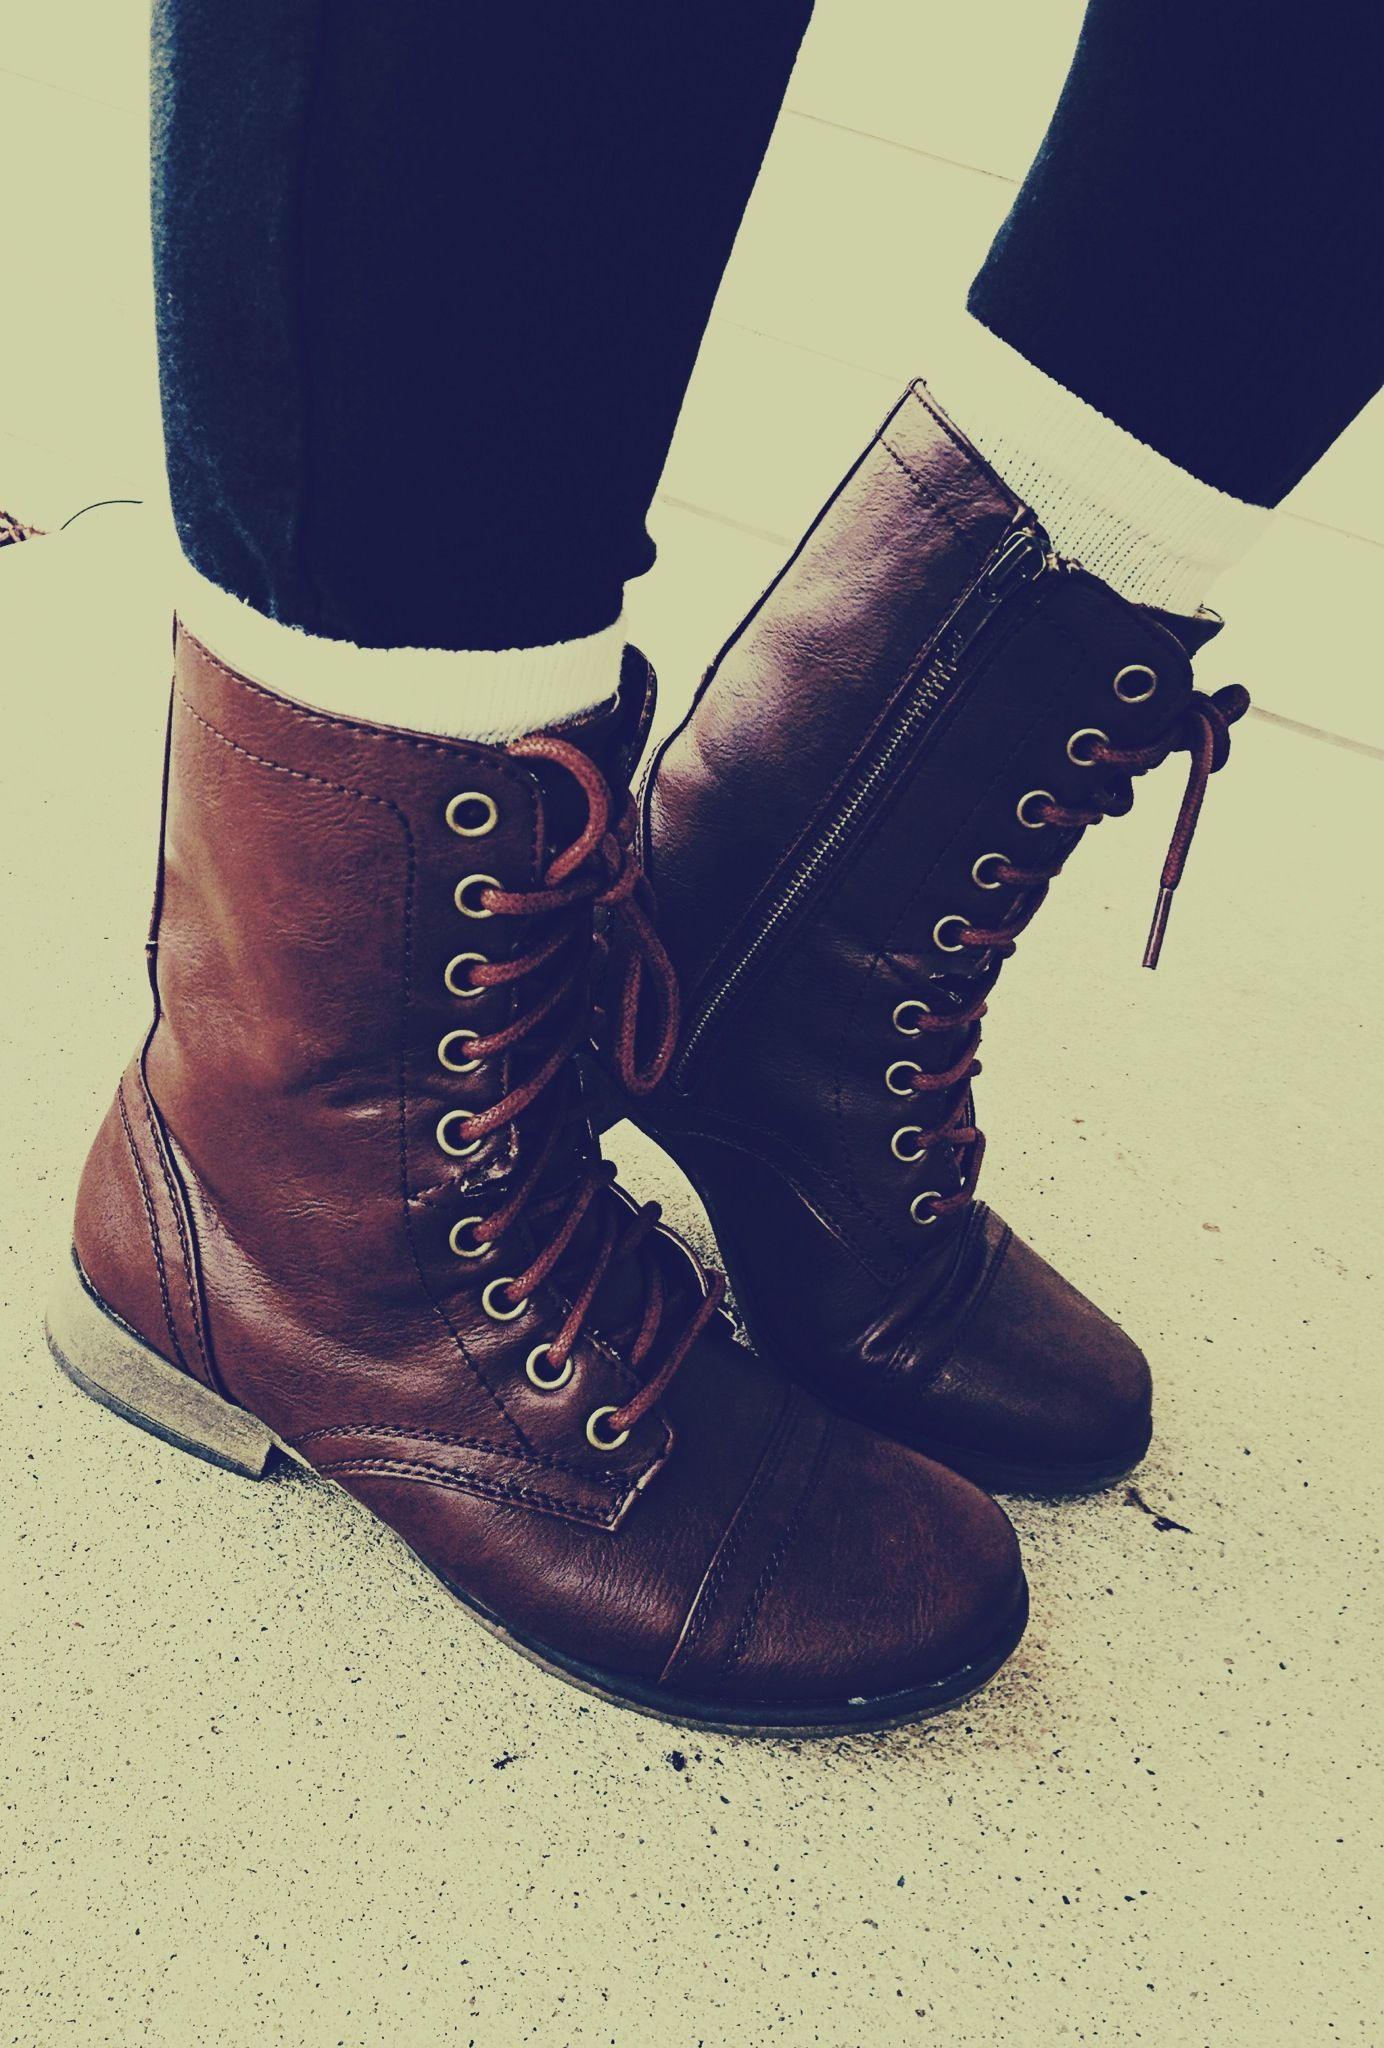 Combat Boots | for my toes | Pinterest | Boots, Shoes and ...